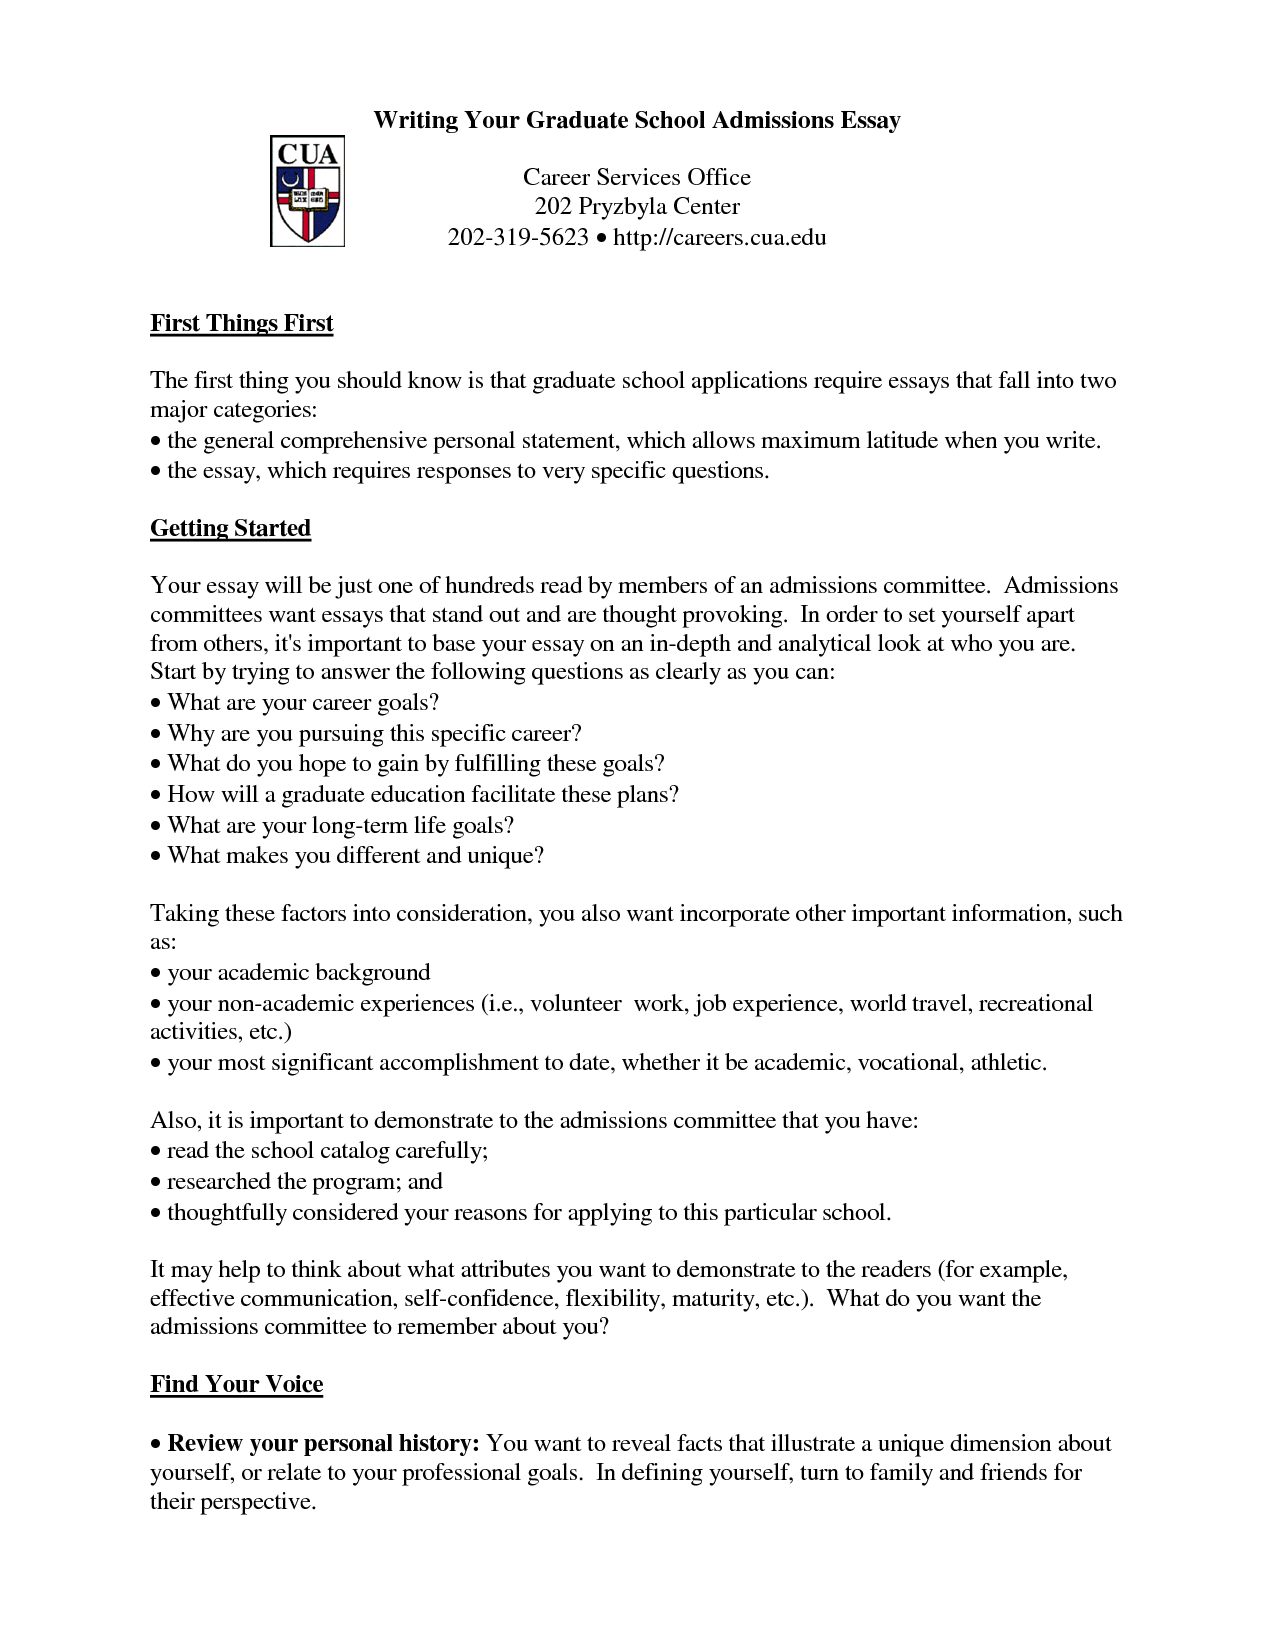 001 Admission Essay Examples For Graduate Best Free Home Example L Wondrous Admissions Sample Education Nursing Samples Full